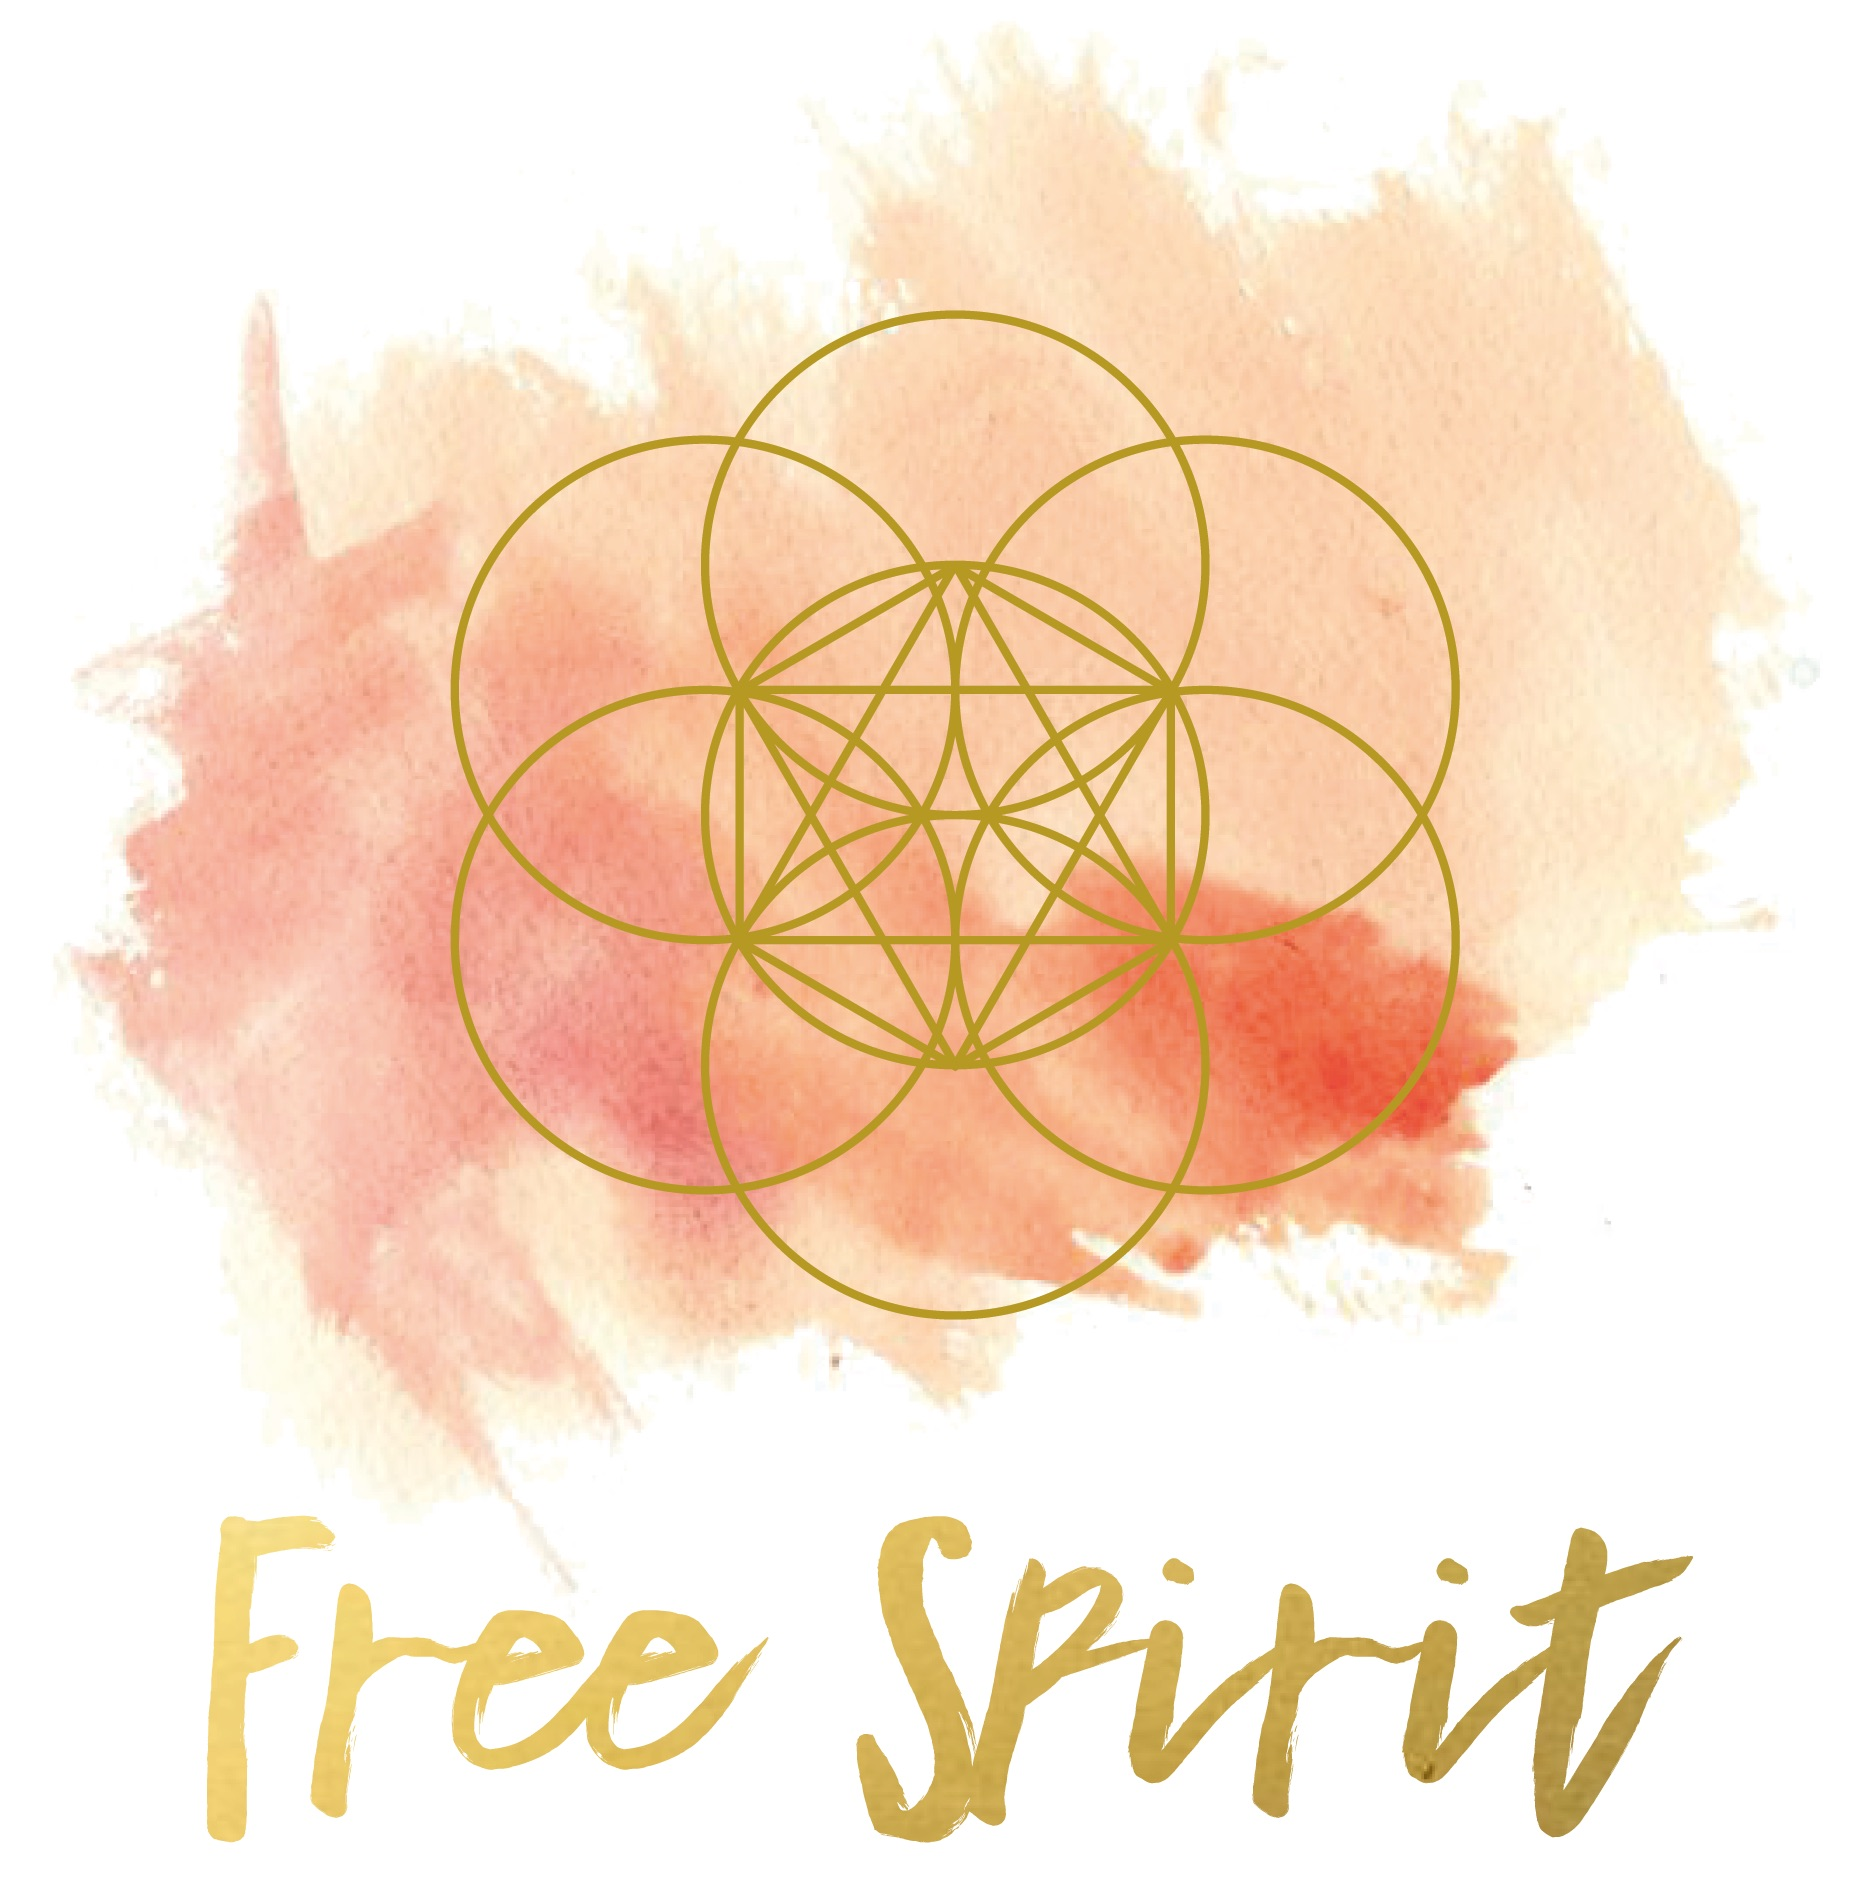 Freespiritcommunications